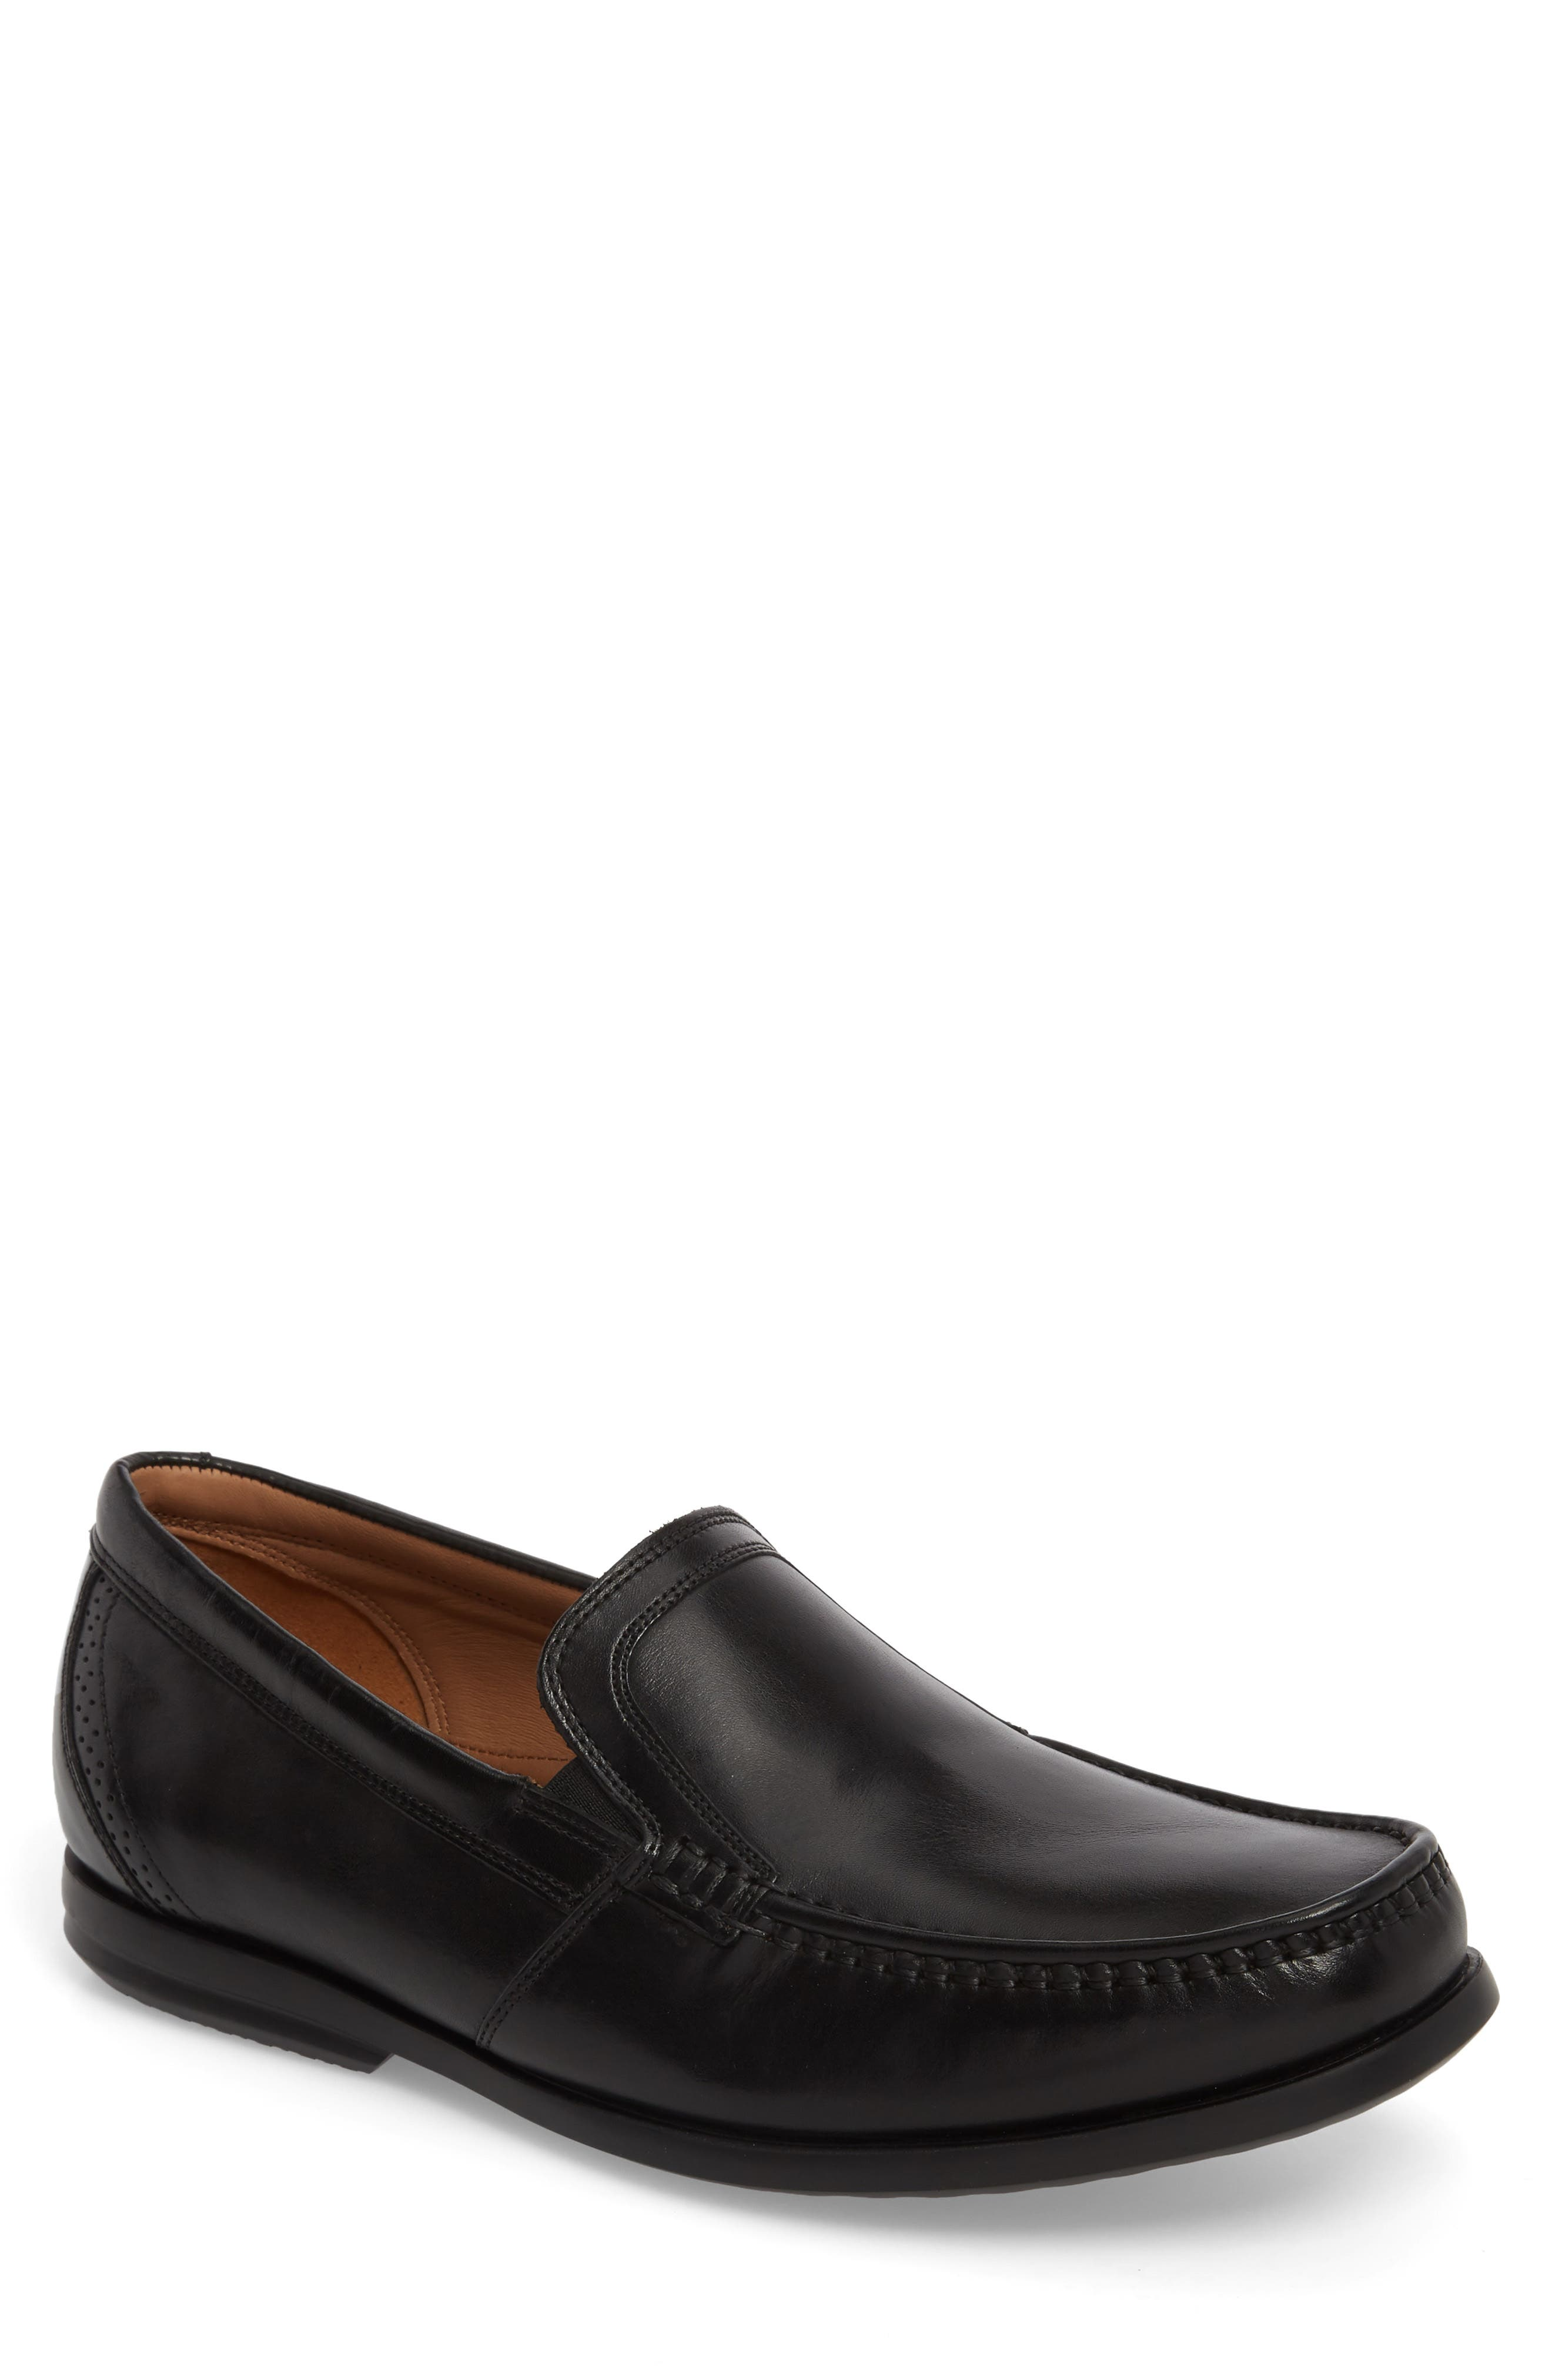 Clarks<sup>®</sup> Ungala Free Venetian Loafer,                             Main thumbnail 1, color,                             003